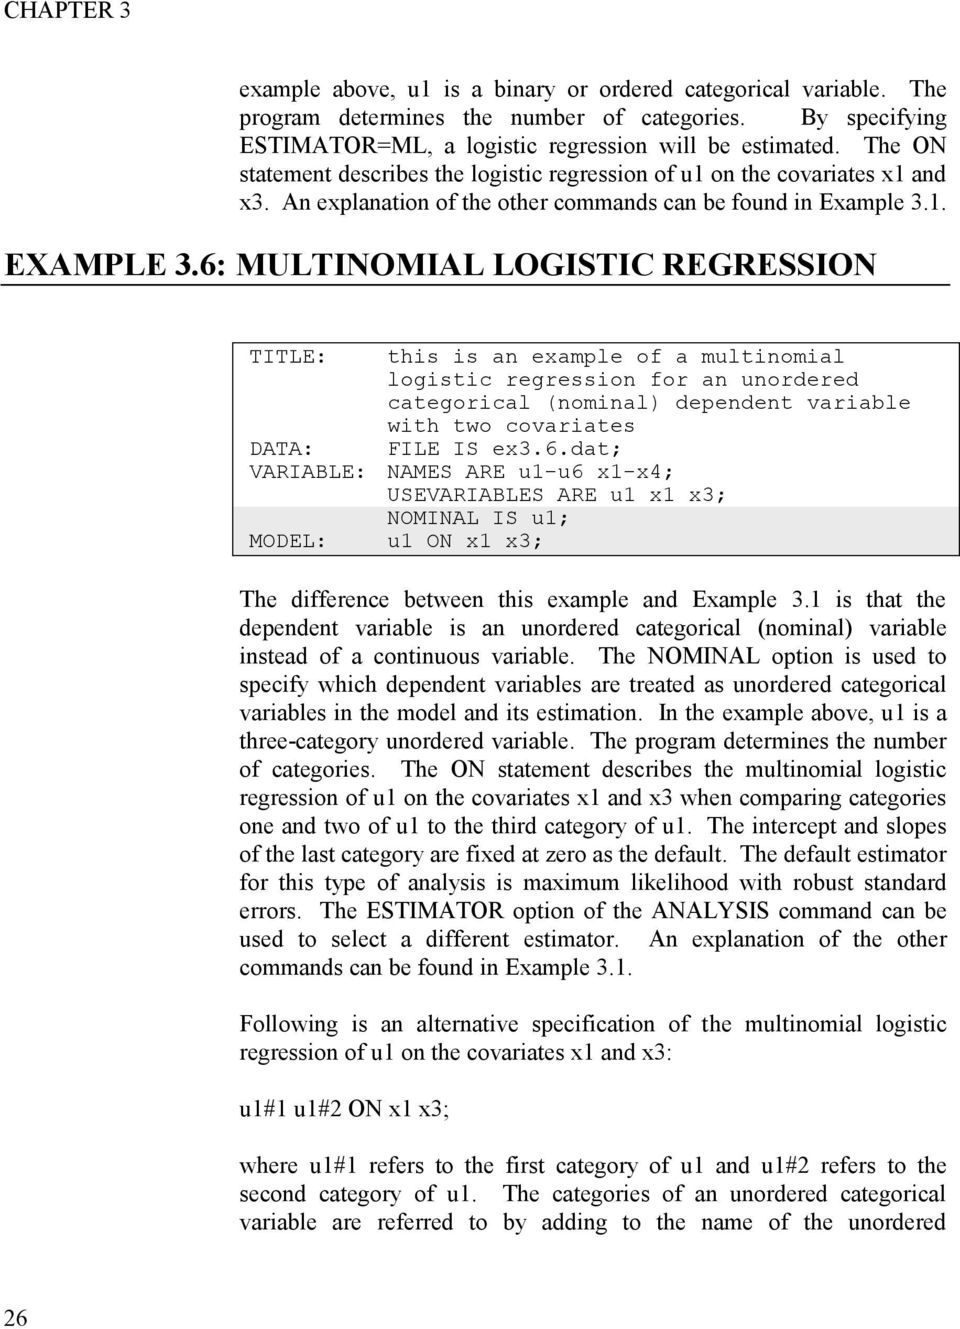 CHAPTER 3 EXAMPLES: REGRESSION AND PATH ANALYSIS - PDF